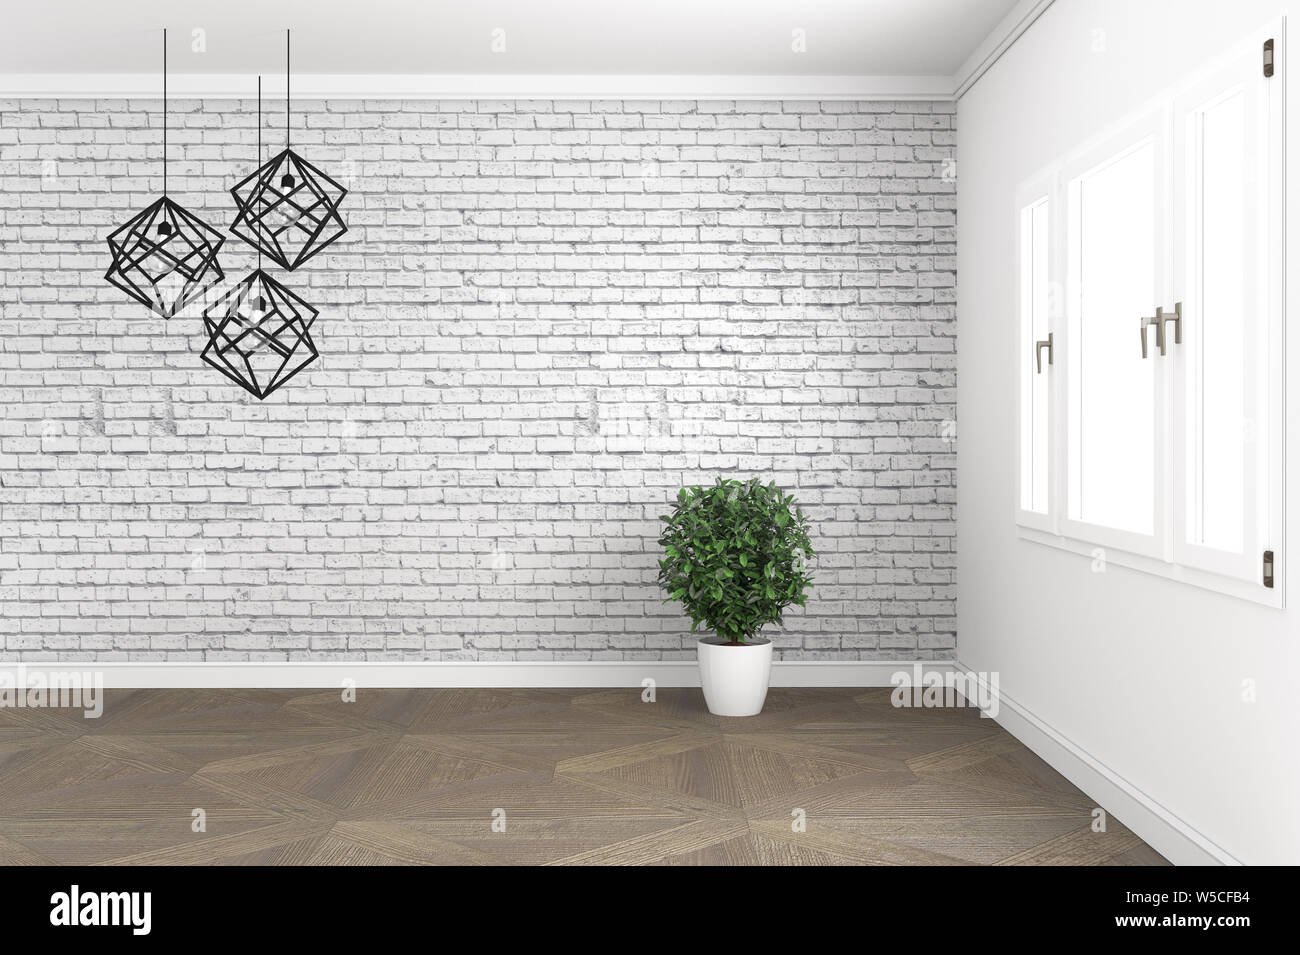 Loft room design, with lamp and plants on white windows in brick wall on wooden floor. 3D rendering Stock Photo